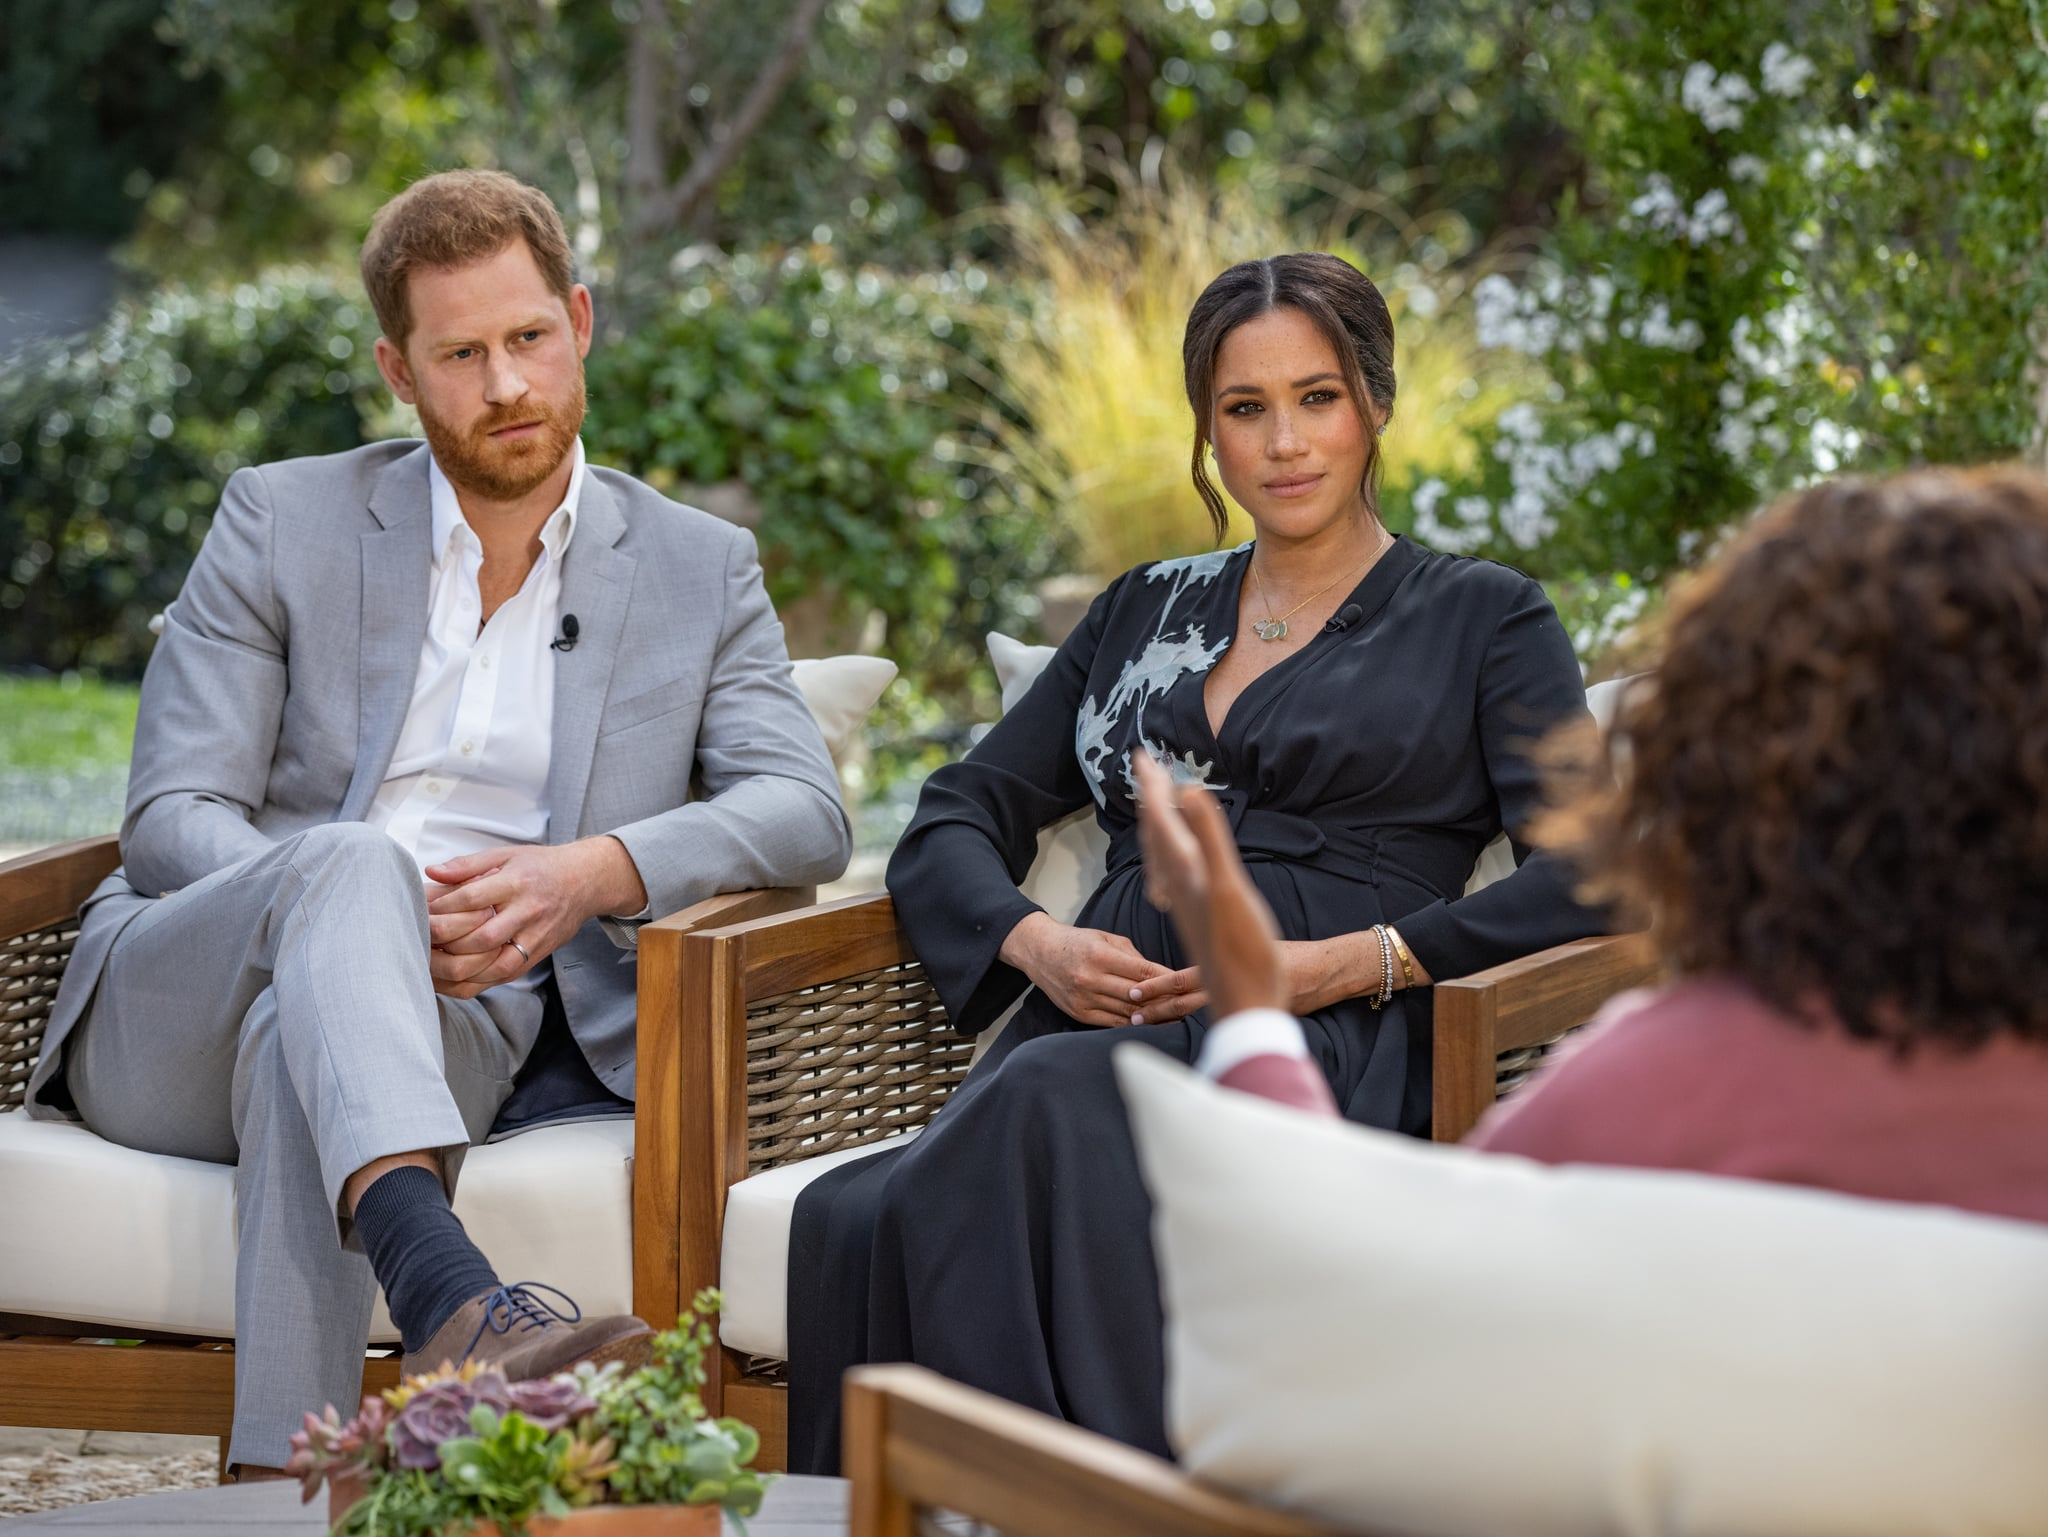 Meghan Markle and Prince Harry during the Oprah interview